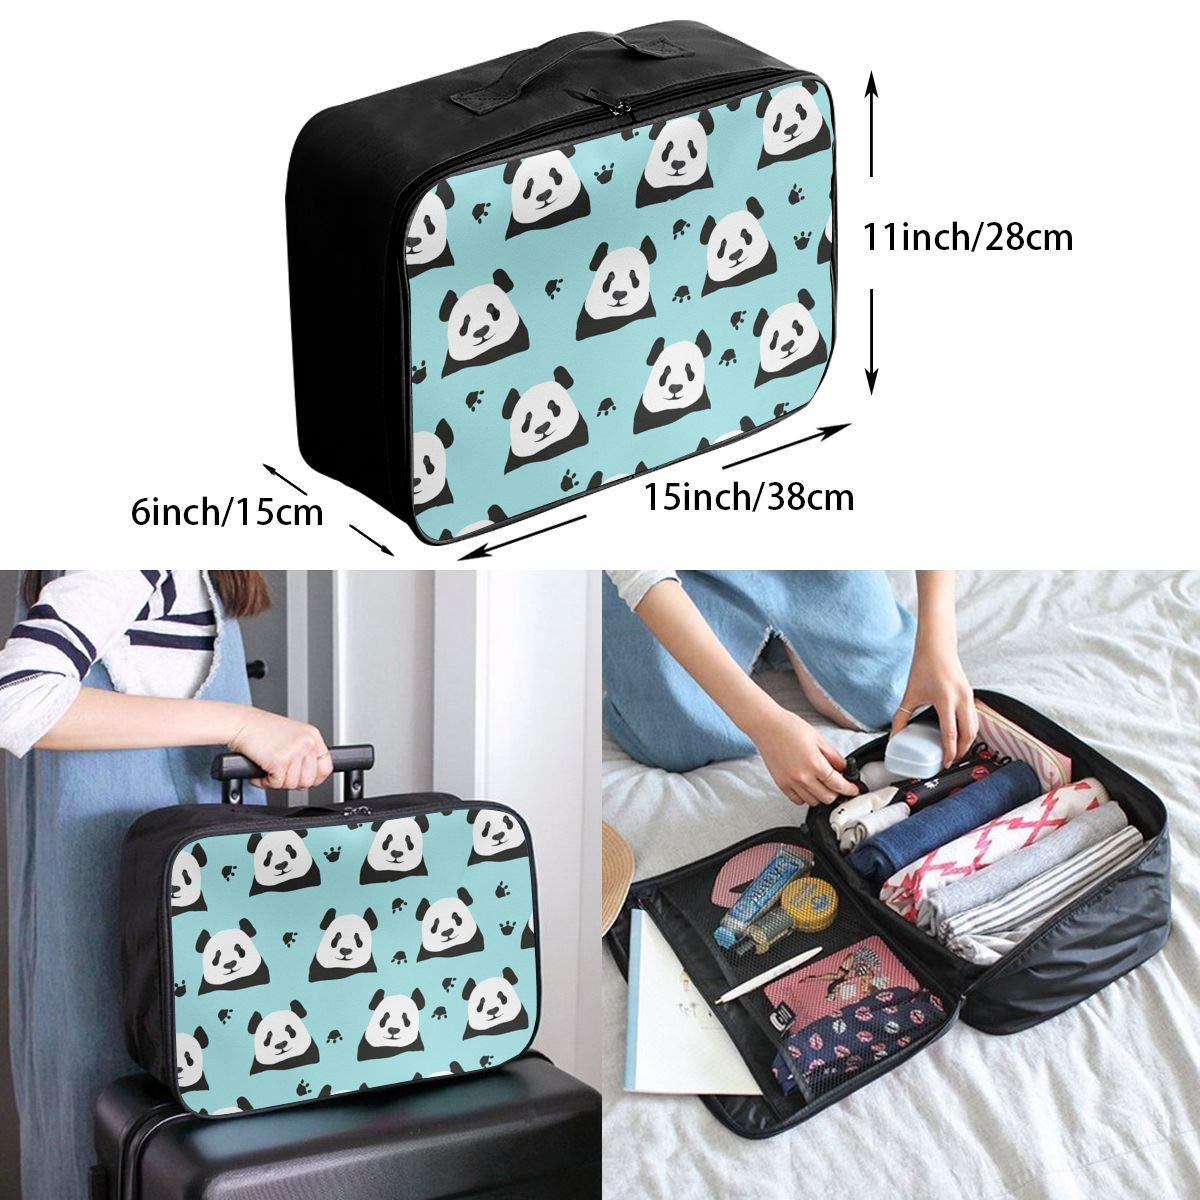 Travel Fashion Lightweight Large Capacity Duffel Portable Waterproof Foldable Storage Carry Luggage Tote Bag Green Panda Pattern